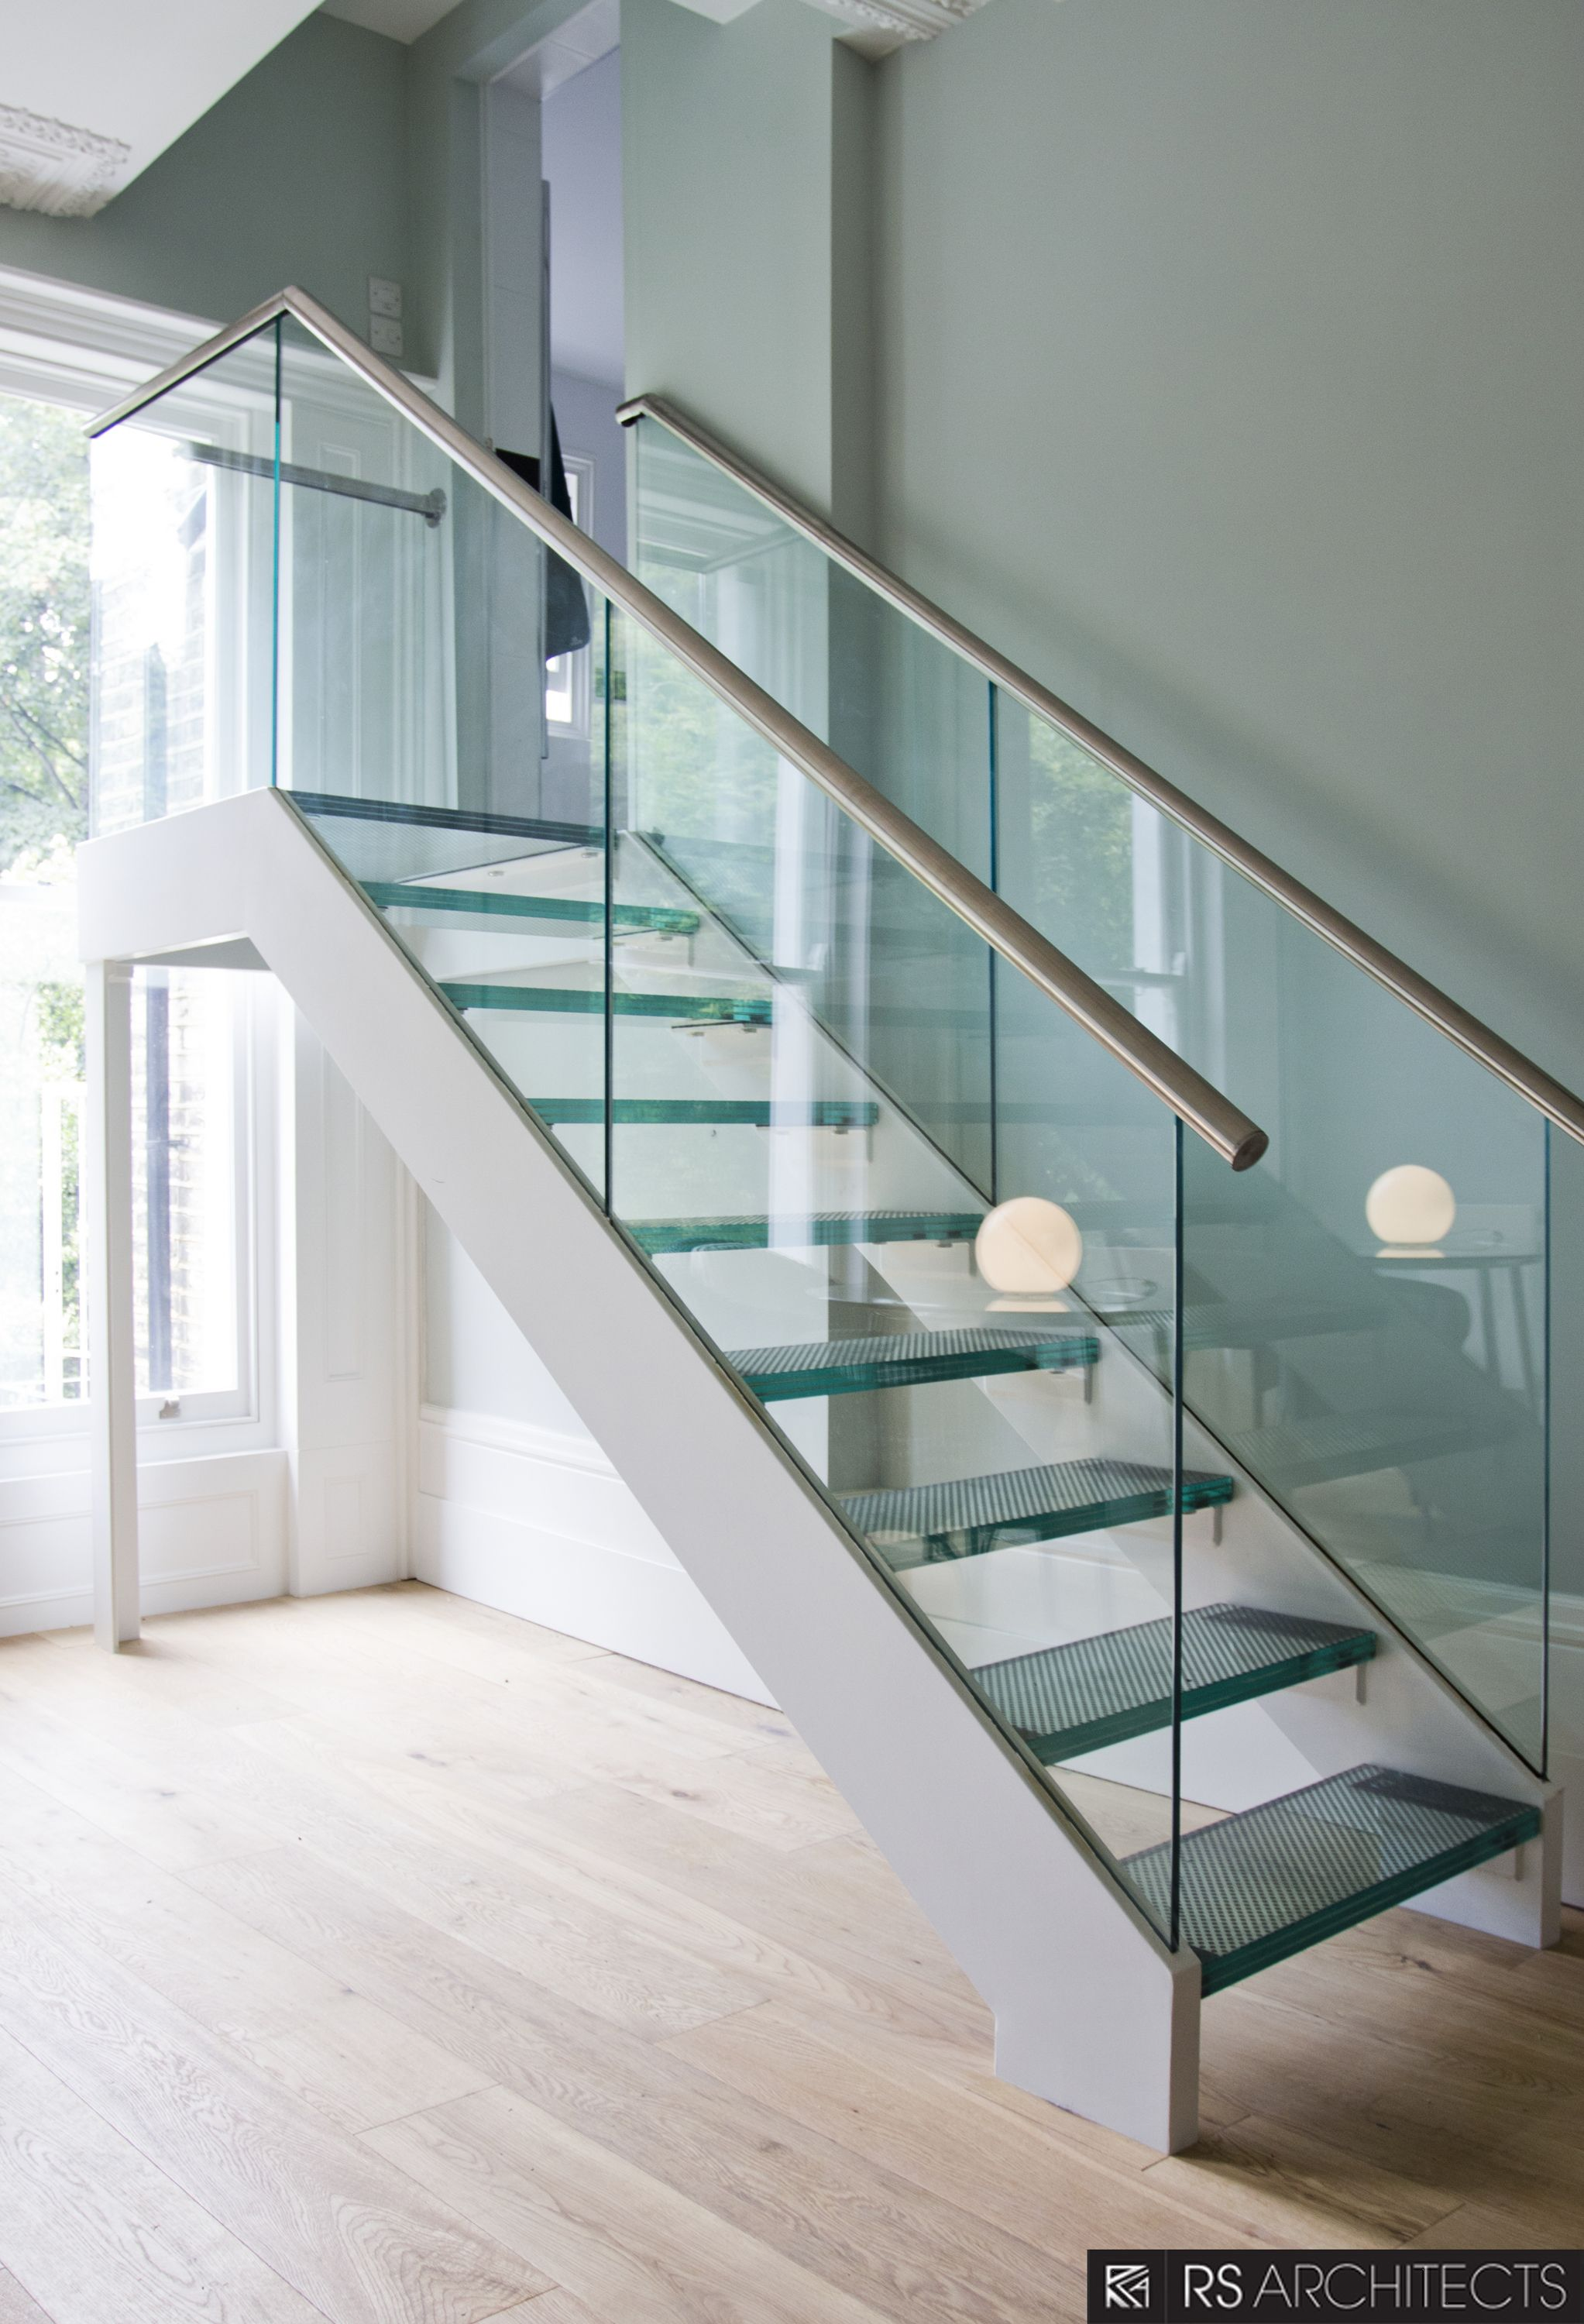 Merveilleux Picturesque Double Chrome Handrail With Glass Balustrade And Landing Glass  Stairs In Modern Open Plan Interior Gray Wall Painted Contemporary Designs